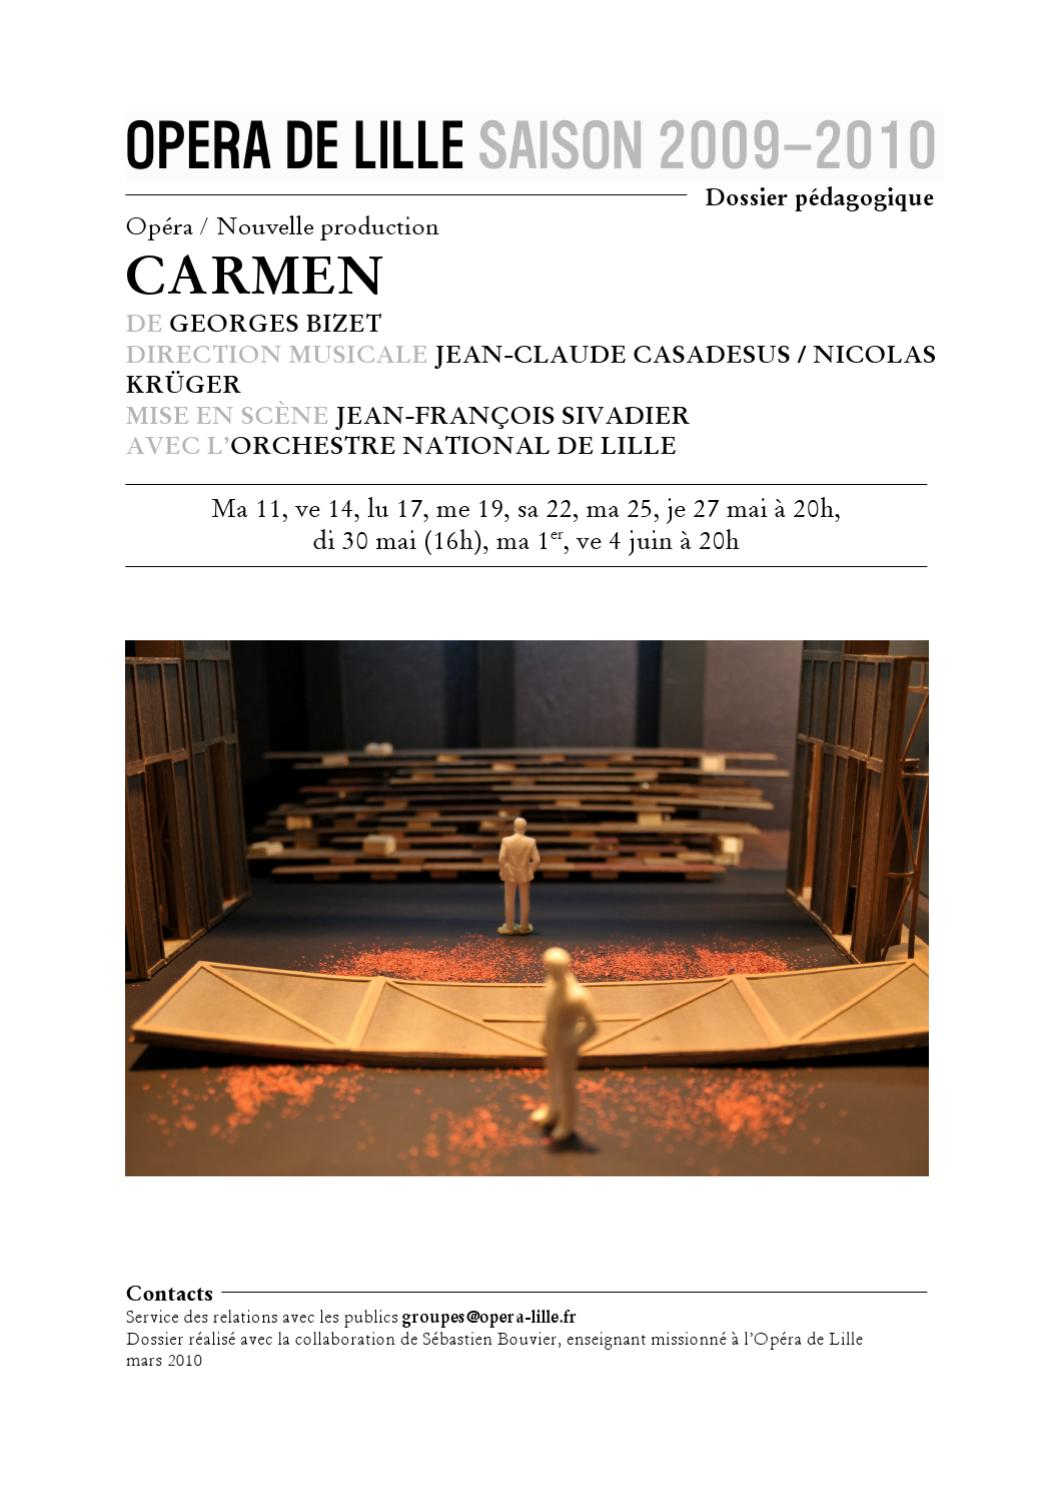 "an analysis of carmen an opera by jean bijet Les feluettes is a rare case of a full-size and full-length contemporary opera that holds the stage while remaining artistically true to itself - arthur kaptainis opéra de montreal premiered ""les feluettes"" saturday, and it had all the characteristics of grand opera, including a tragic love story, passionate music and grand staging."